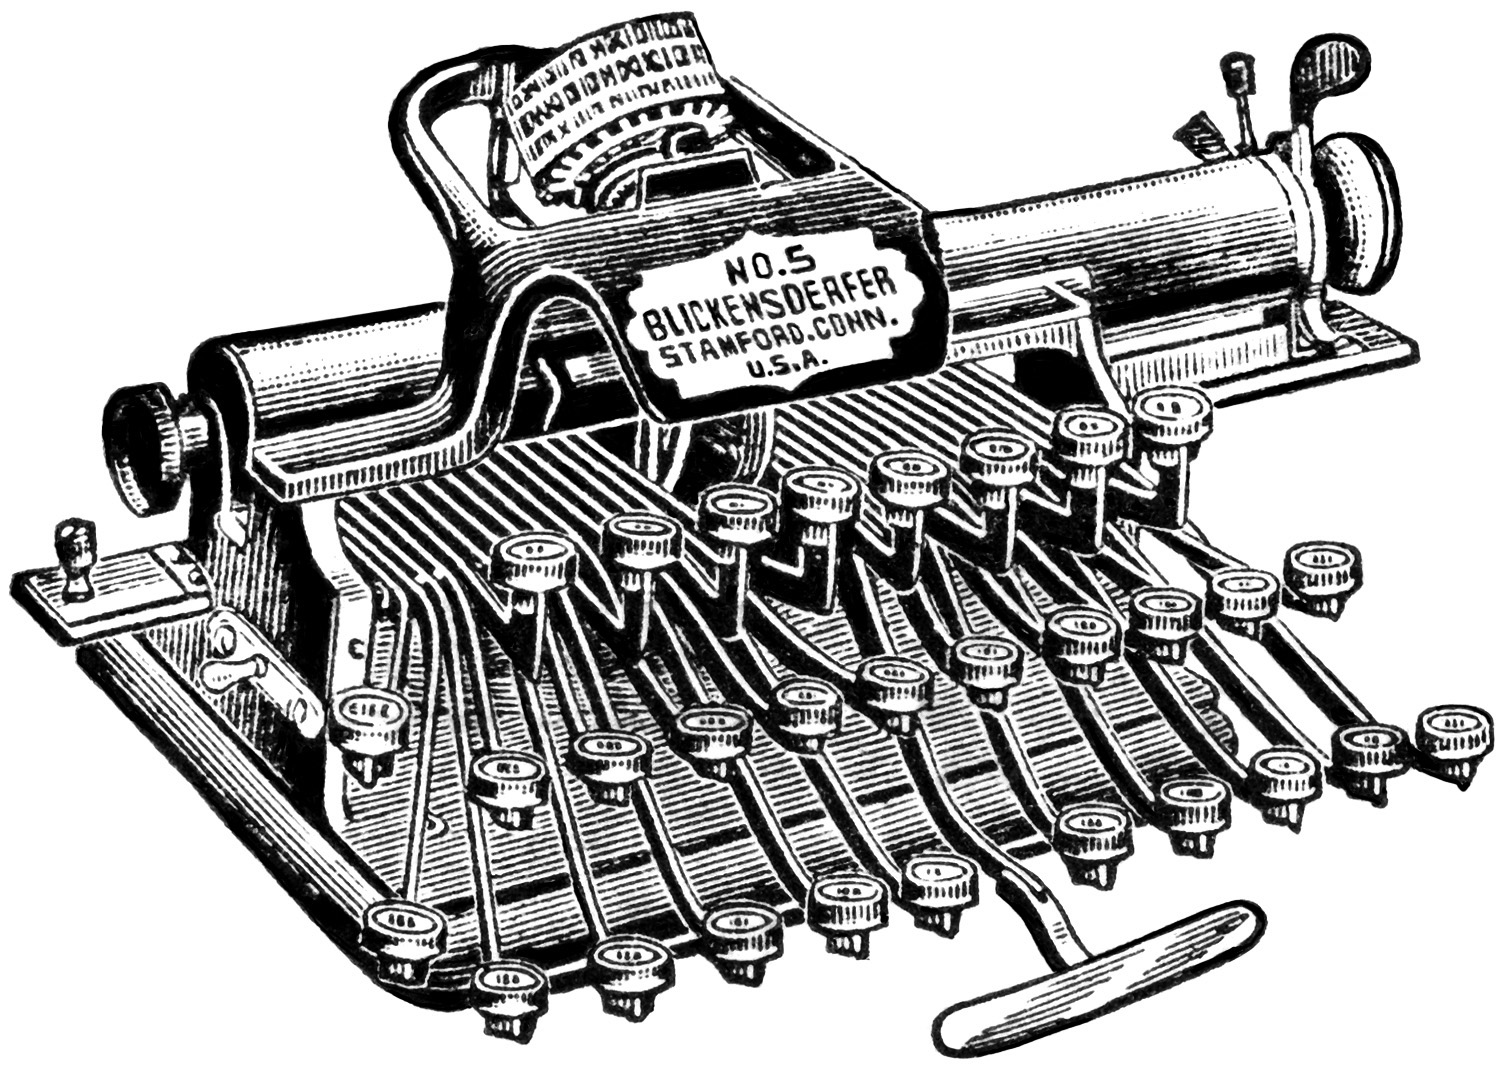 1000+ images about VINTAGE TYPEWRITERS on Pinterest.